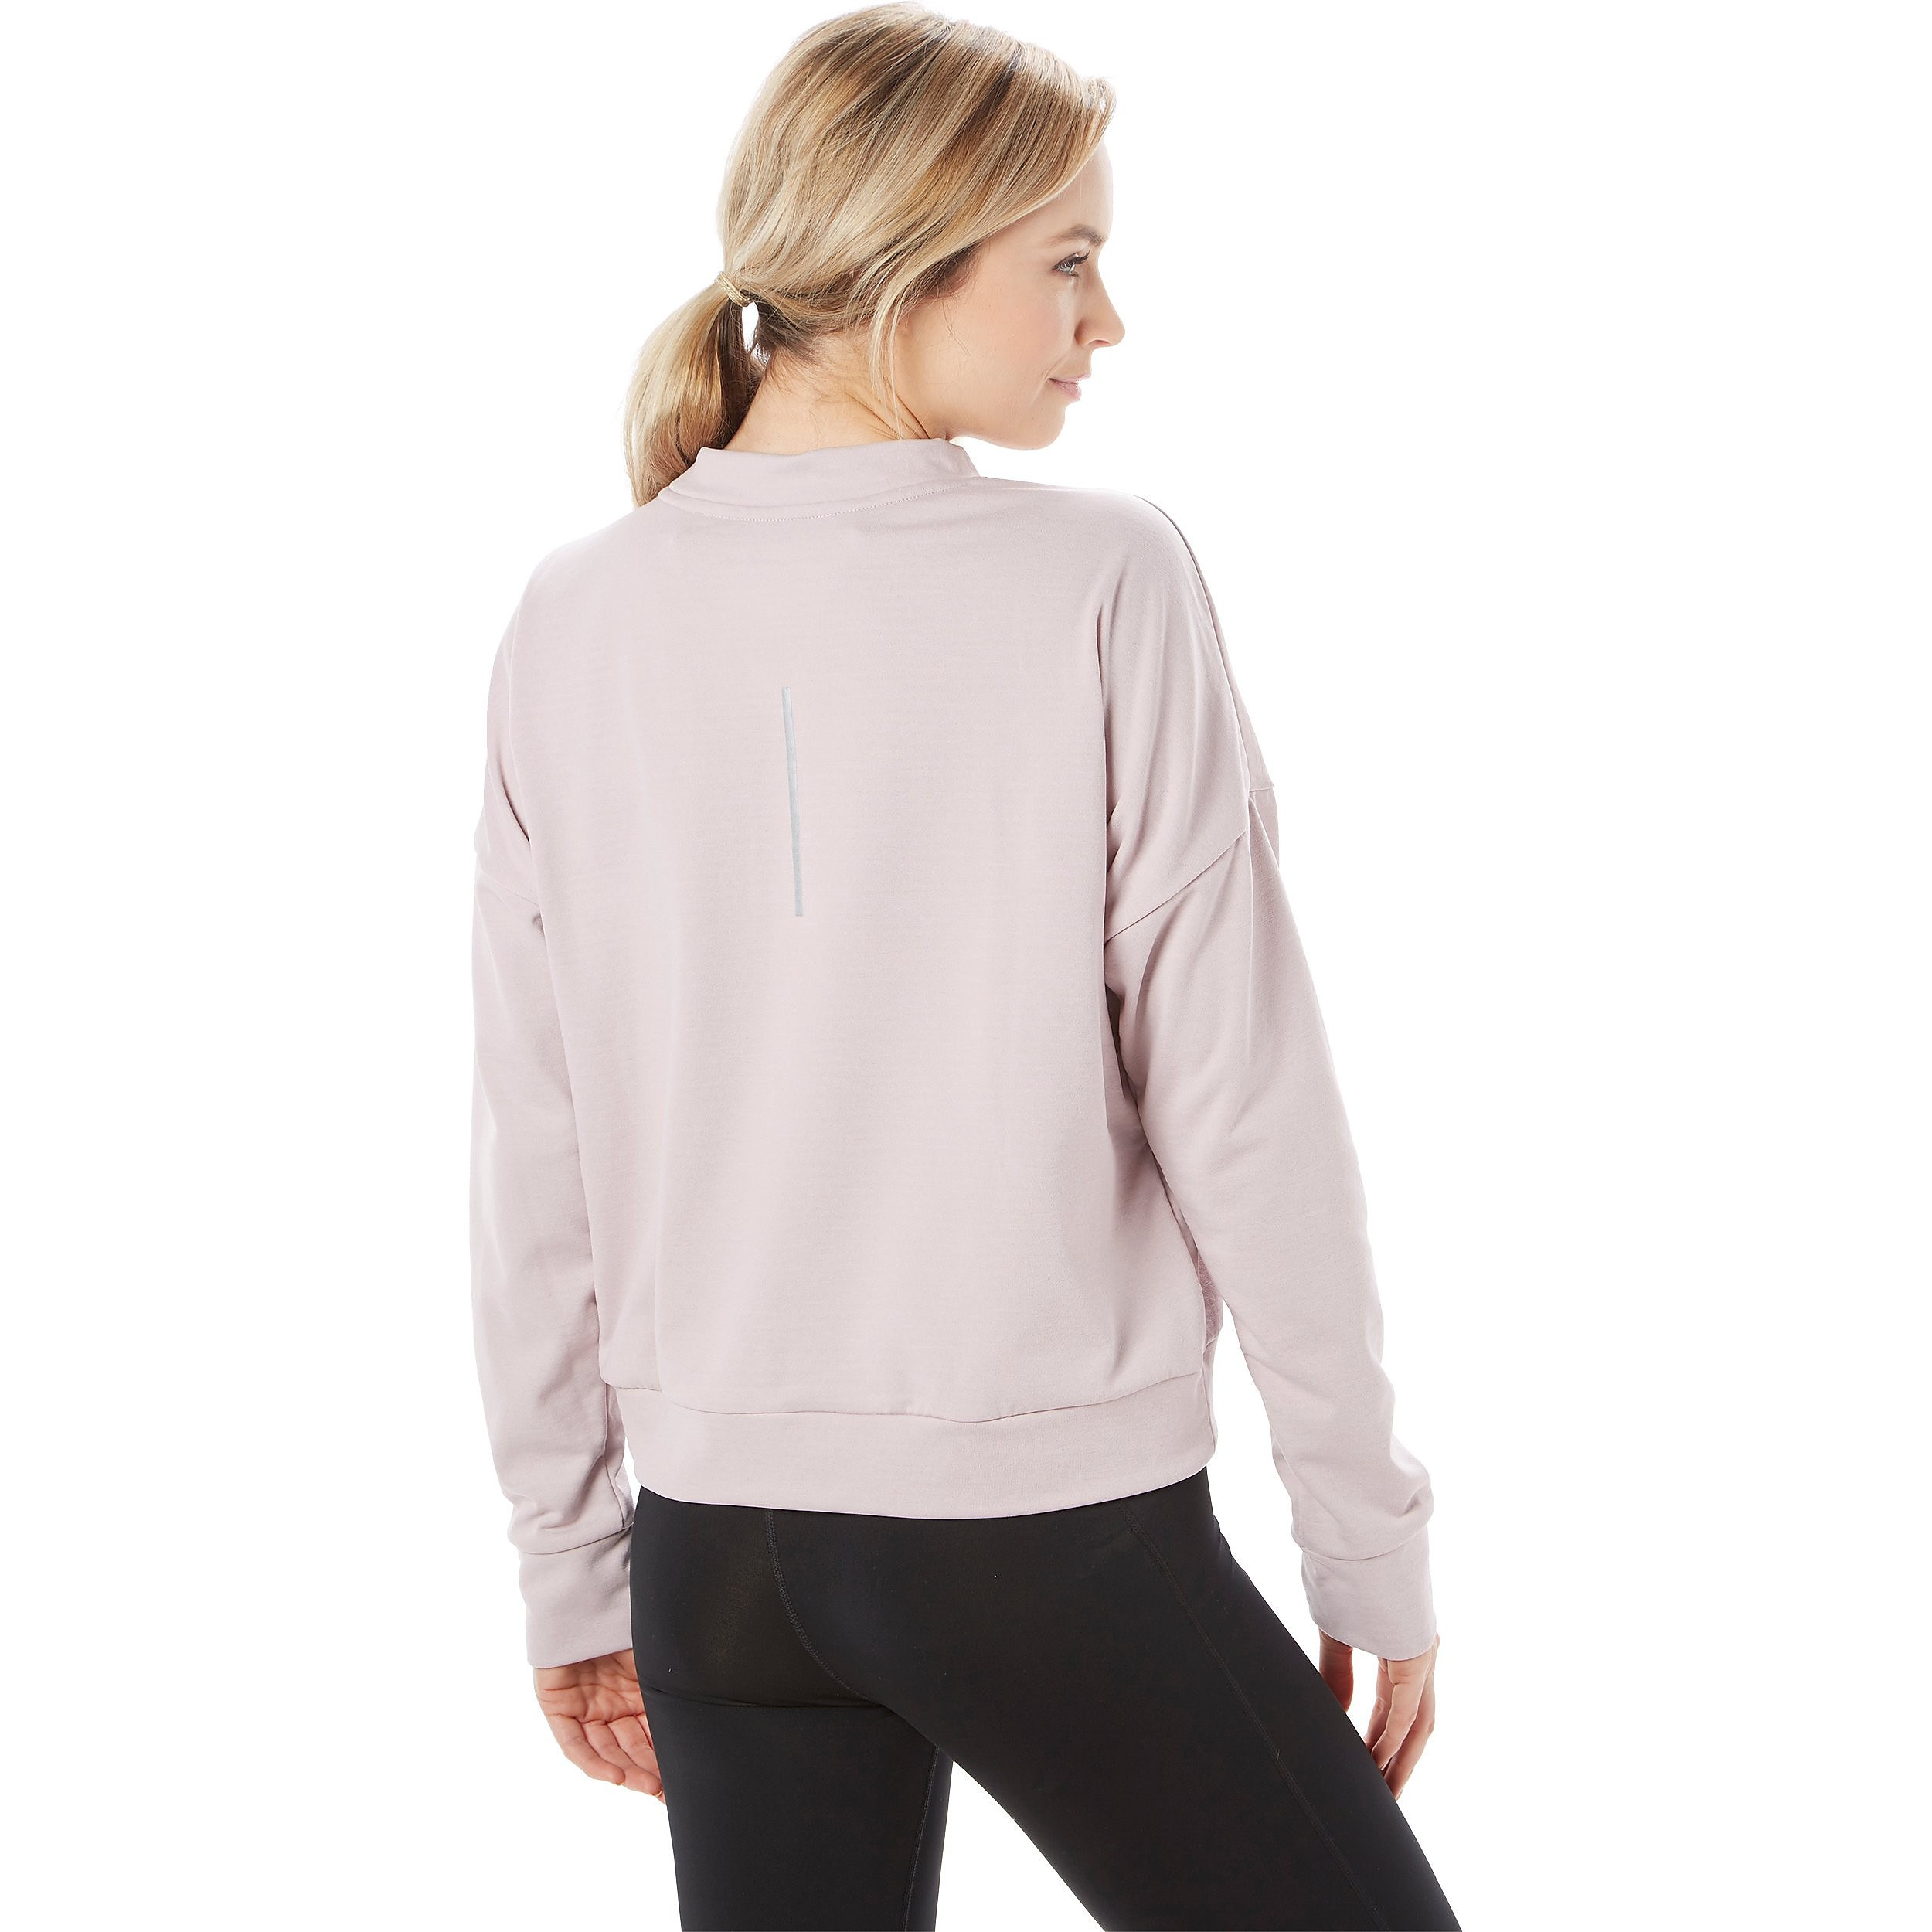 Nike Therma-Sphere Element Long Sleeve Women's Running Top